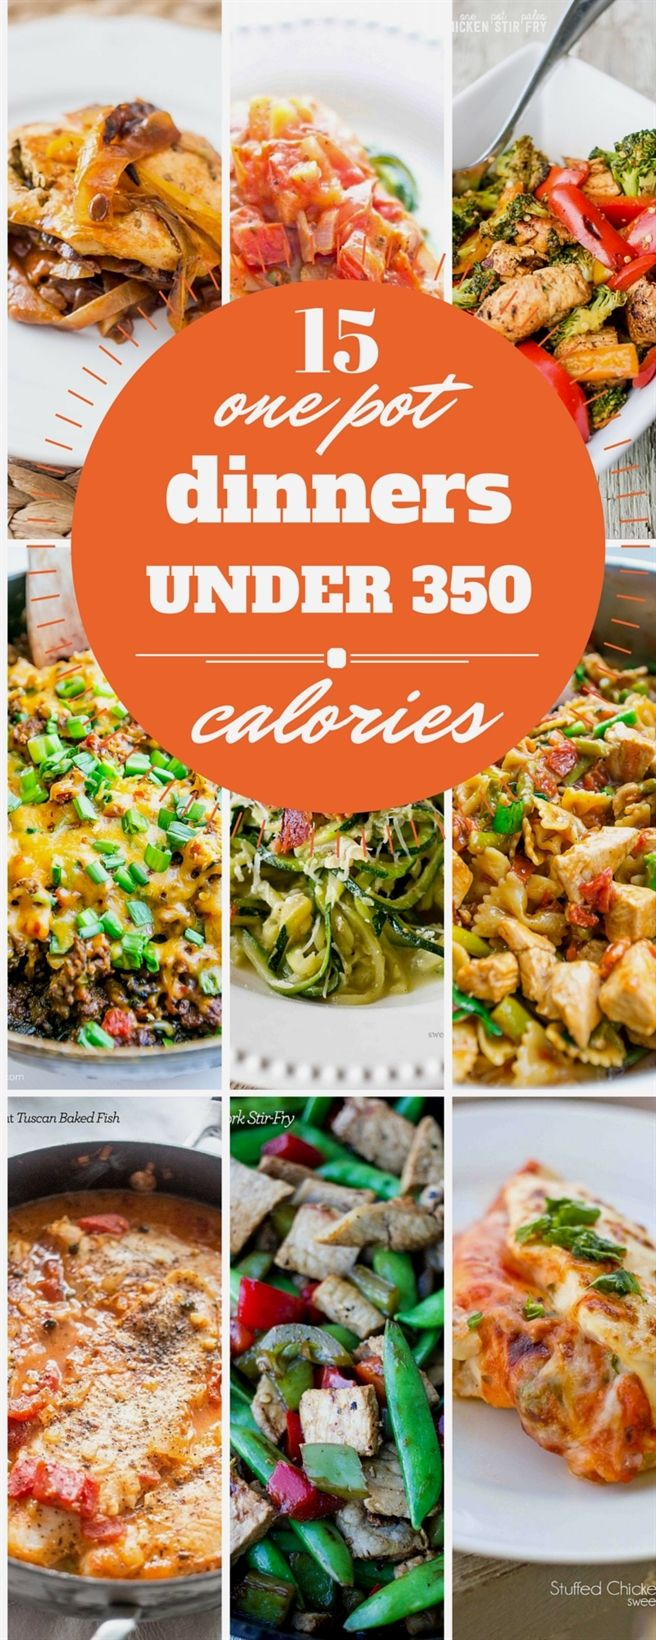 15 one pot dinners under 350 calories - rich, comforting, and easy meals that are family pleasers that won't derail your diet! #LowCalorieMeals #300caloriemeals